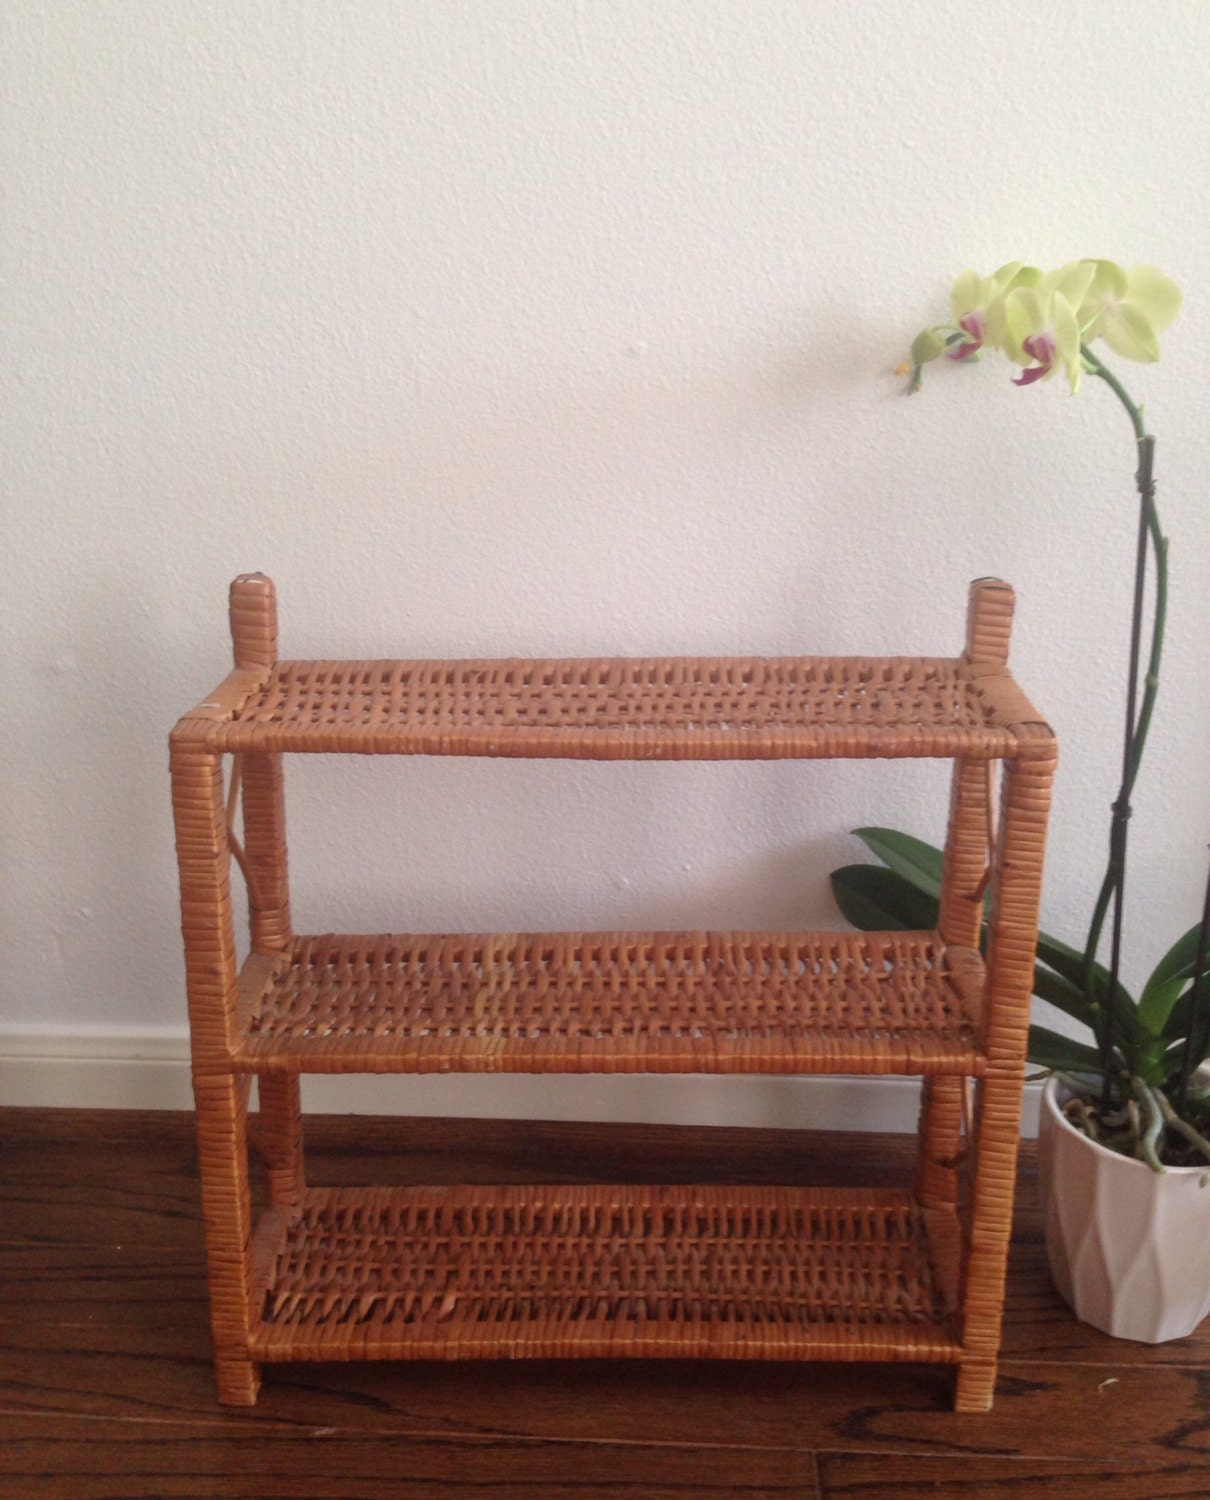 Wicker bathroom shelves